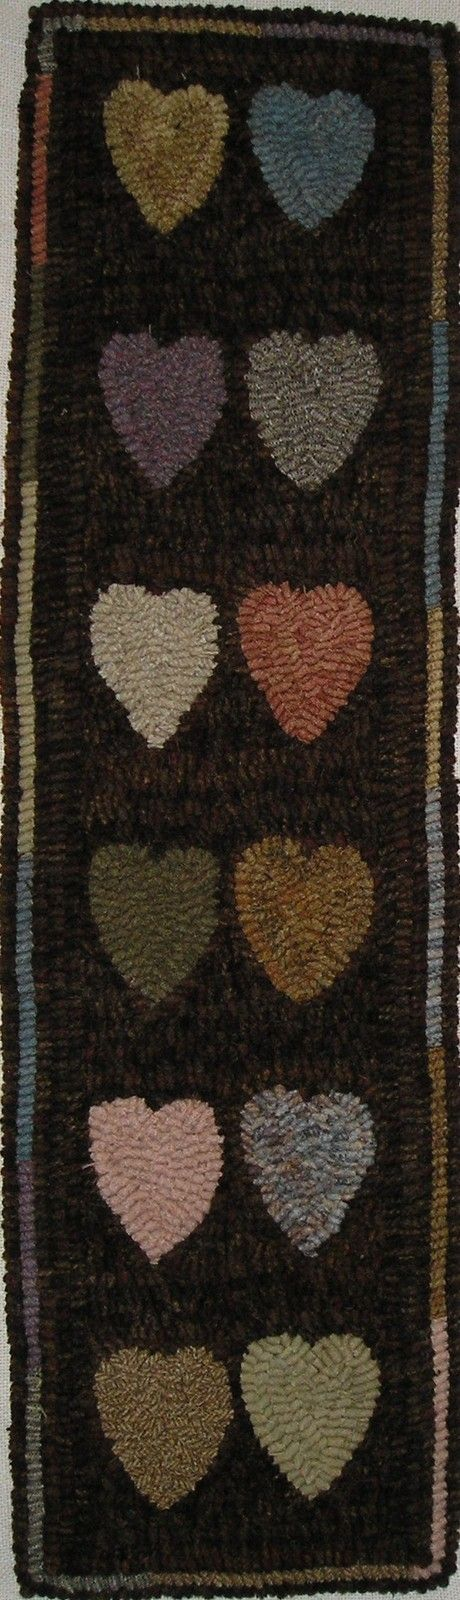 Hand Hooked Rug Early Style Primitive Hit And Miss Hearts